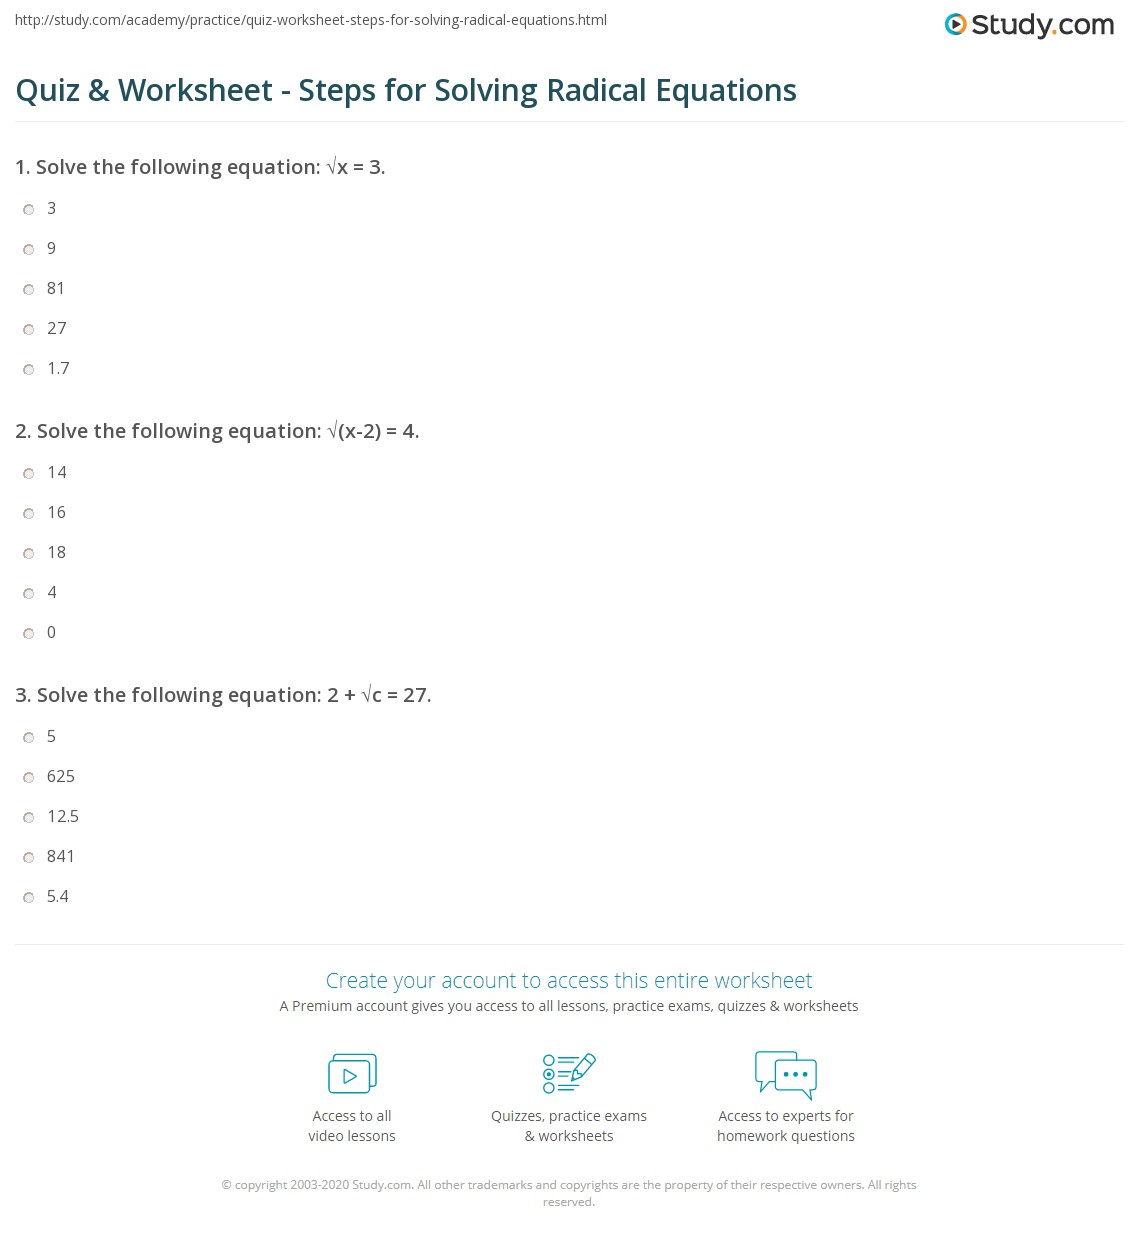 print solving radical equations steps and examples worksheet - Solving Radical Equations Worksheet